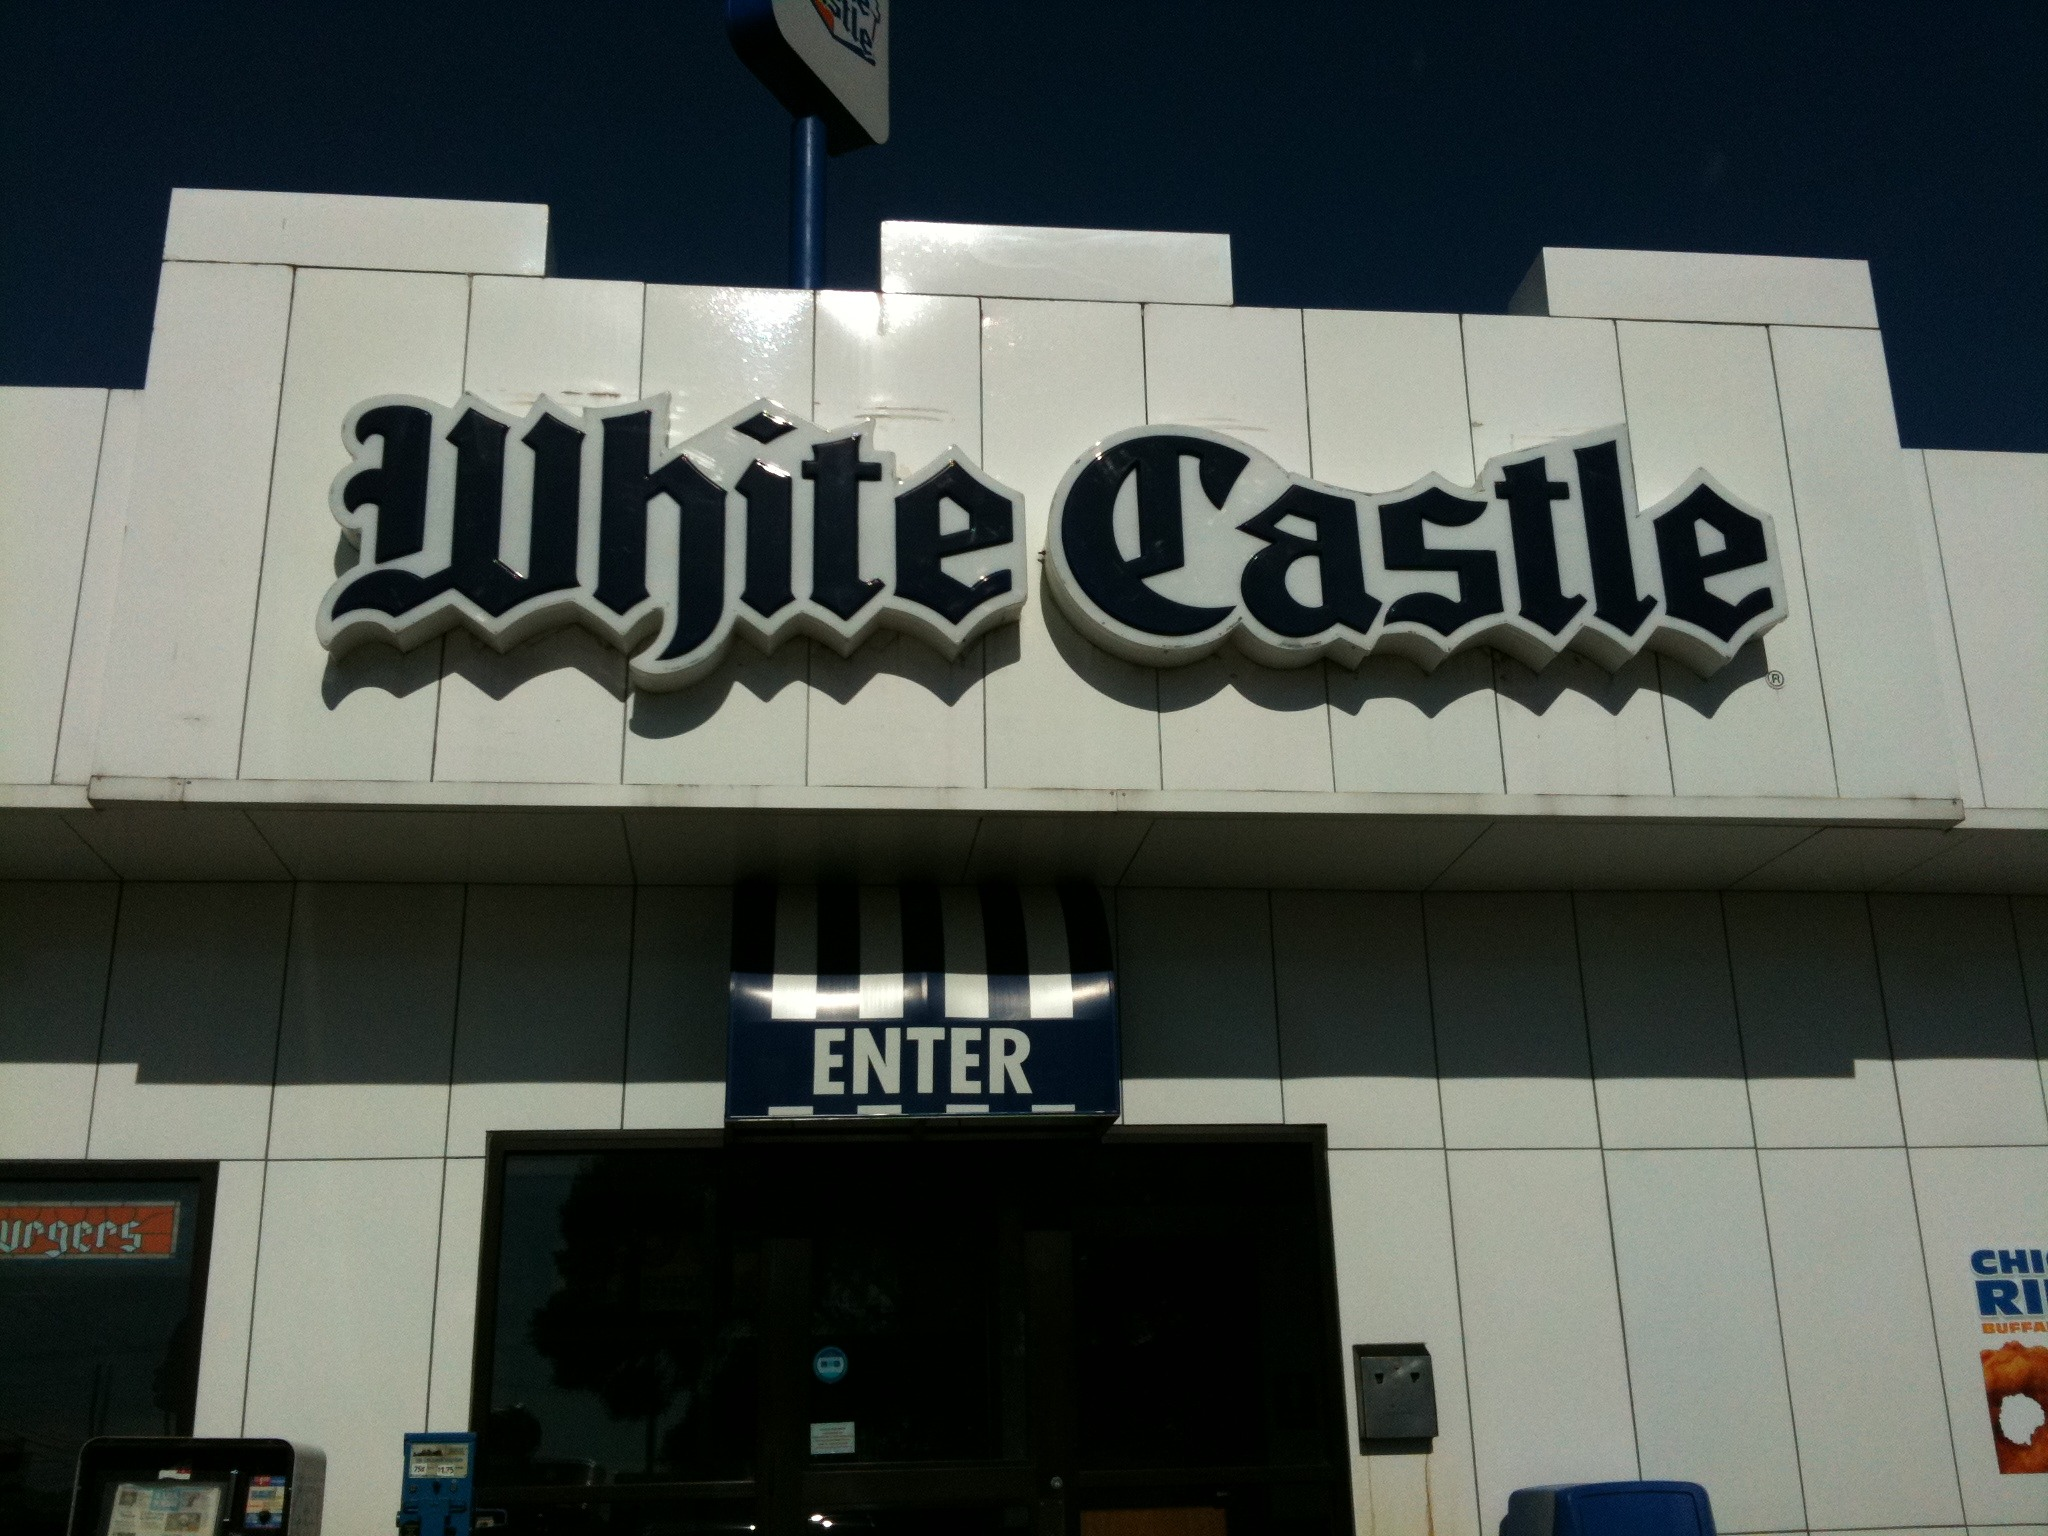 kloh goes to White Castle